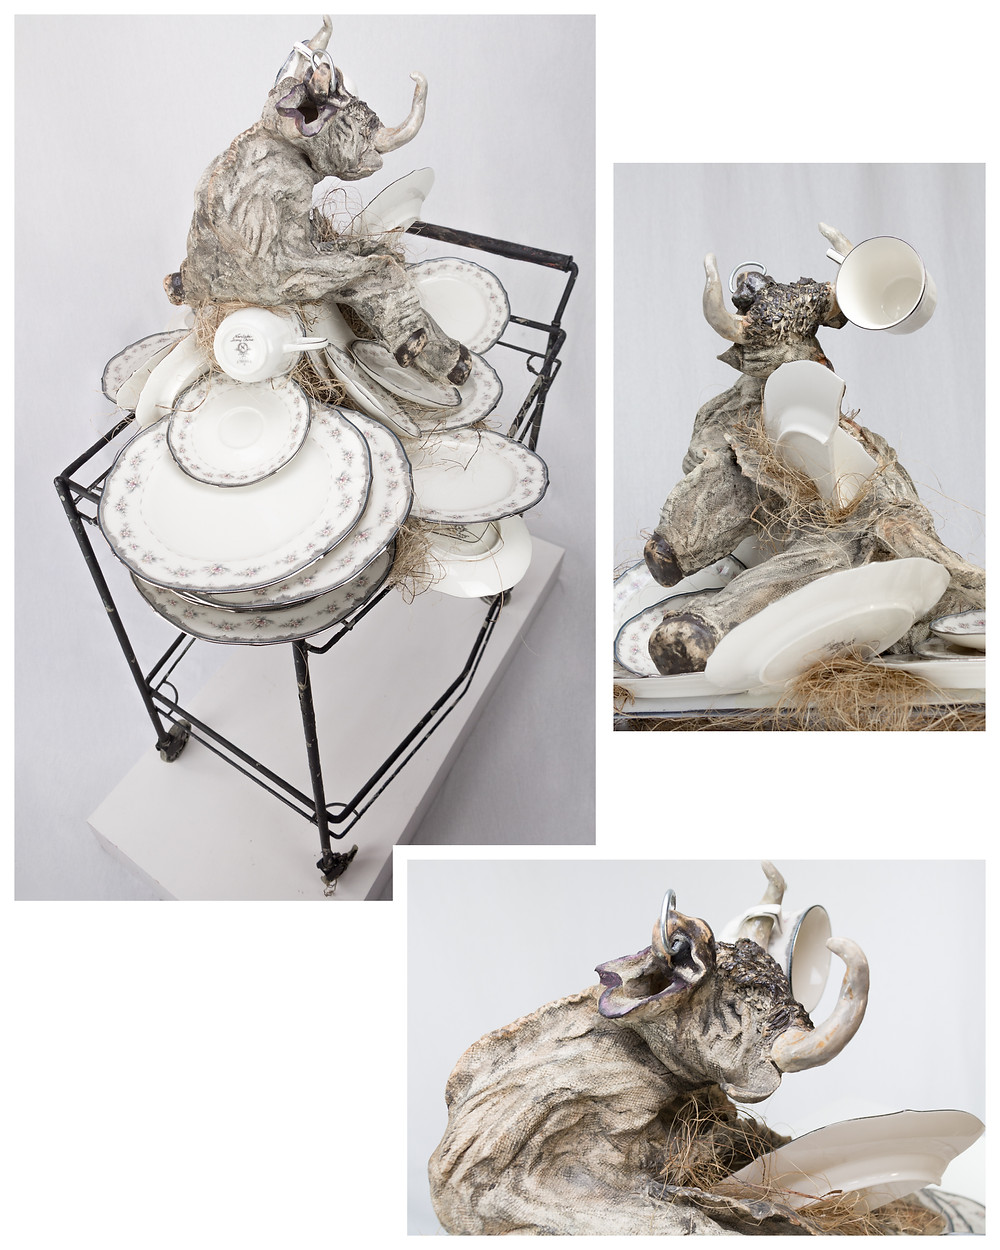 Handle With Care 46 x 32 x 47 in Medium: high-fired ceramic, found cart, artists wedding china